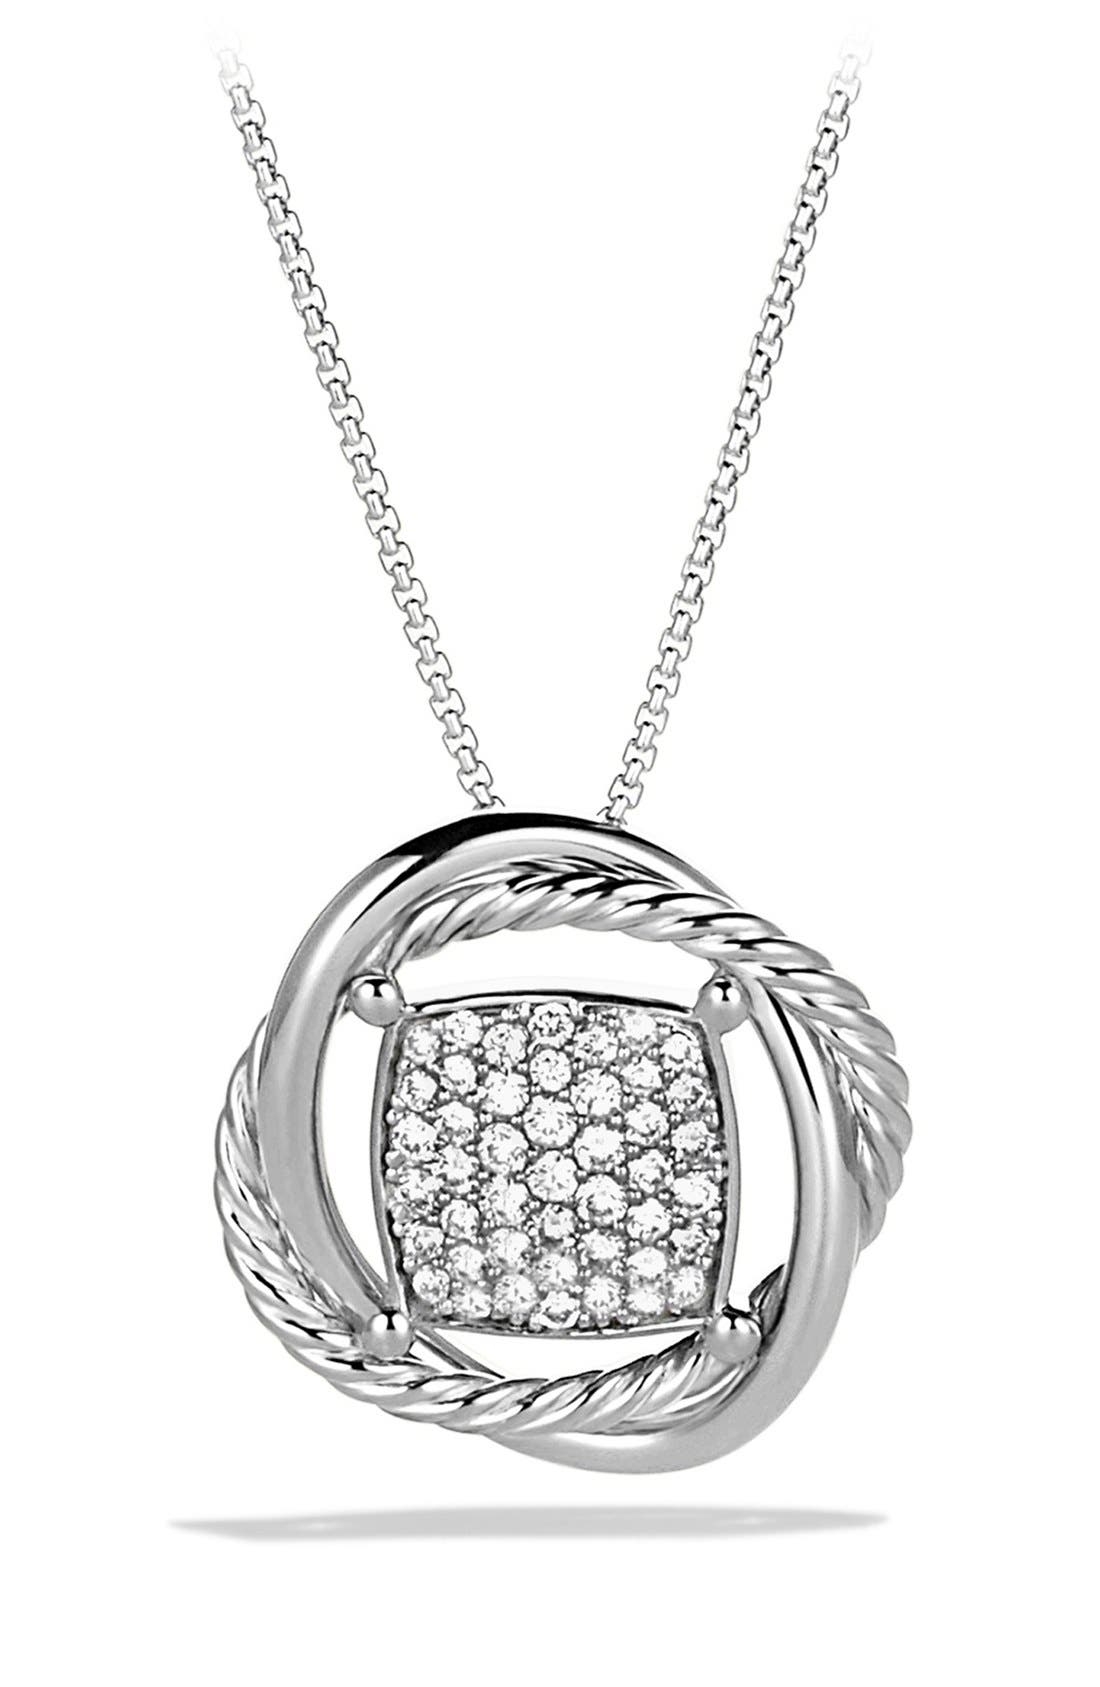 Main Image - David Yurman 'Infinity' Pendant with Diamonds on Chain